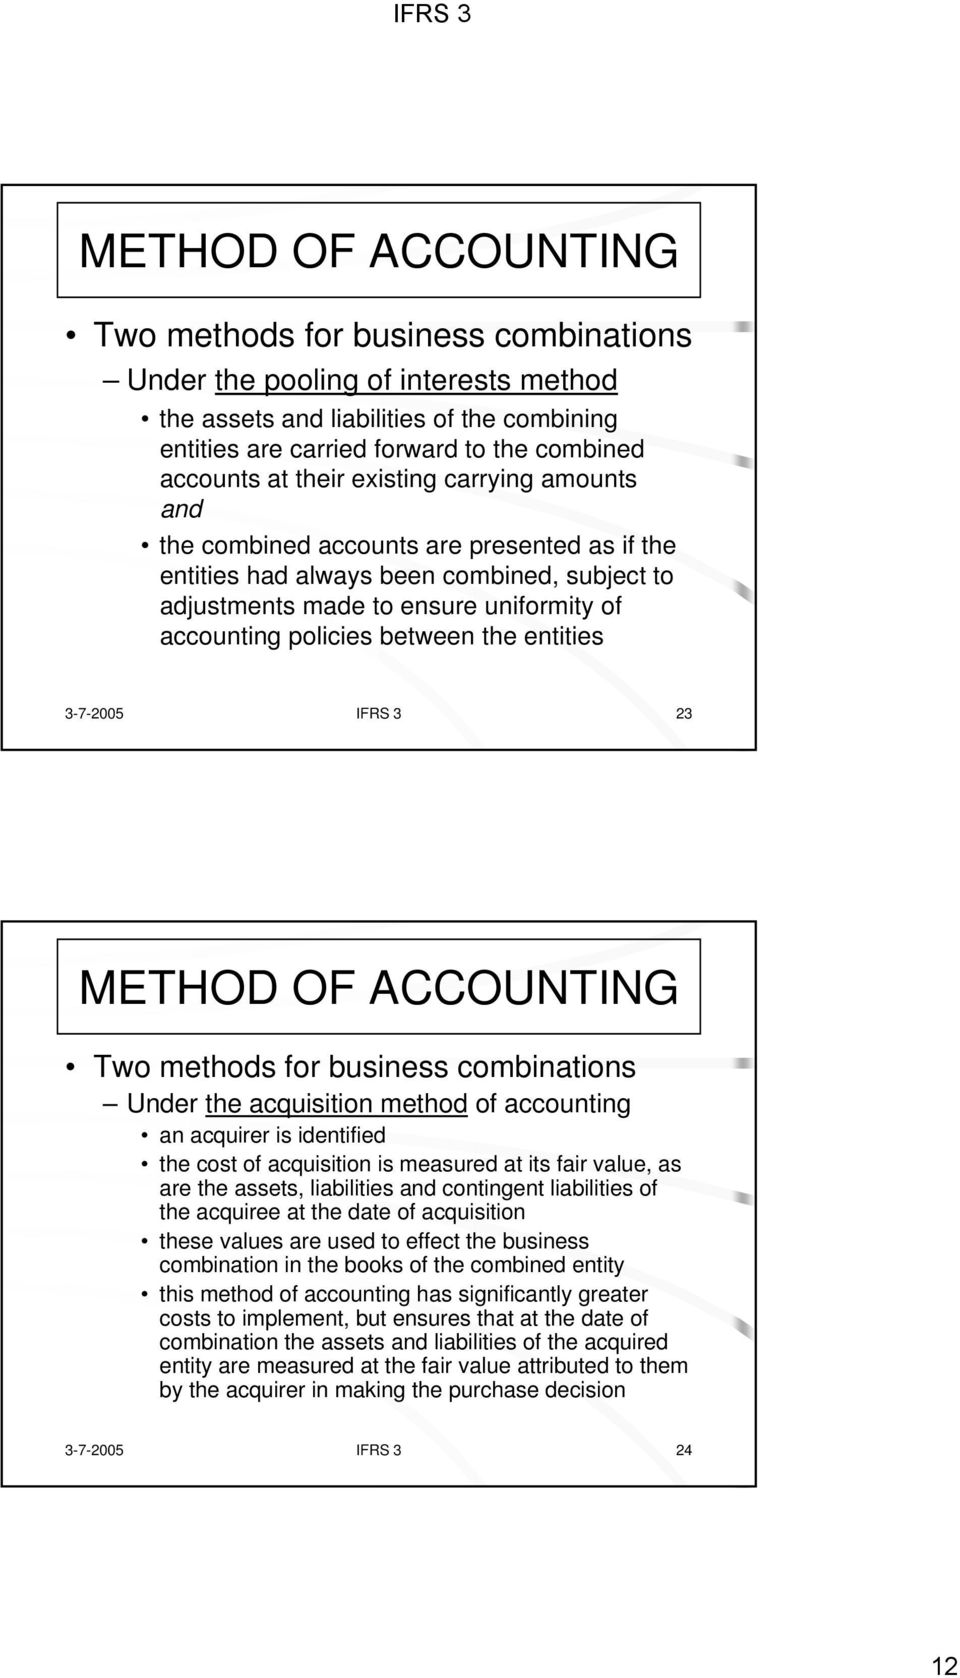 3-7-2005 IFRS 3 23 Two methods for business combinations Under the acquisition method of accounting an acquirer is identified the cost of acquisition is measured at its fair value, as are the assets,